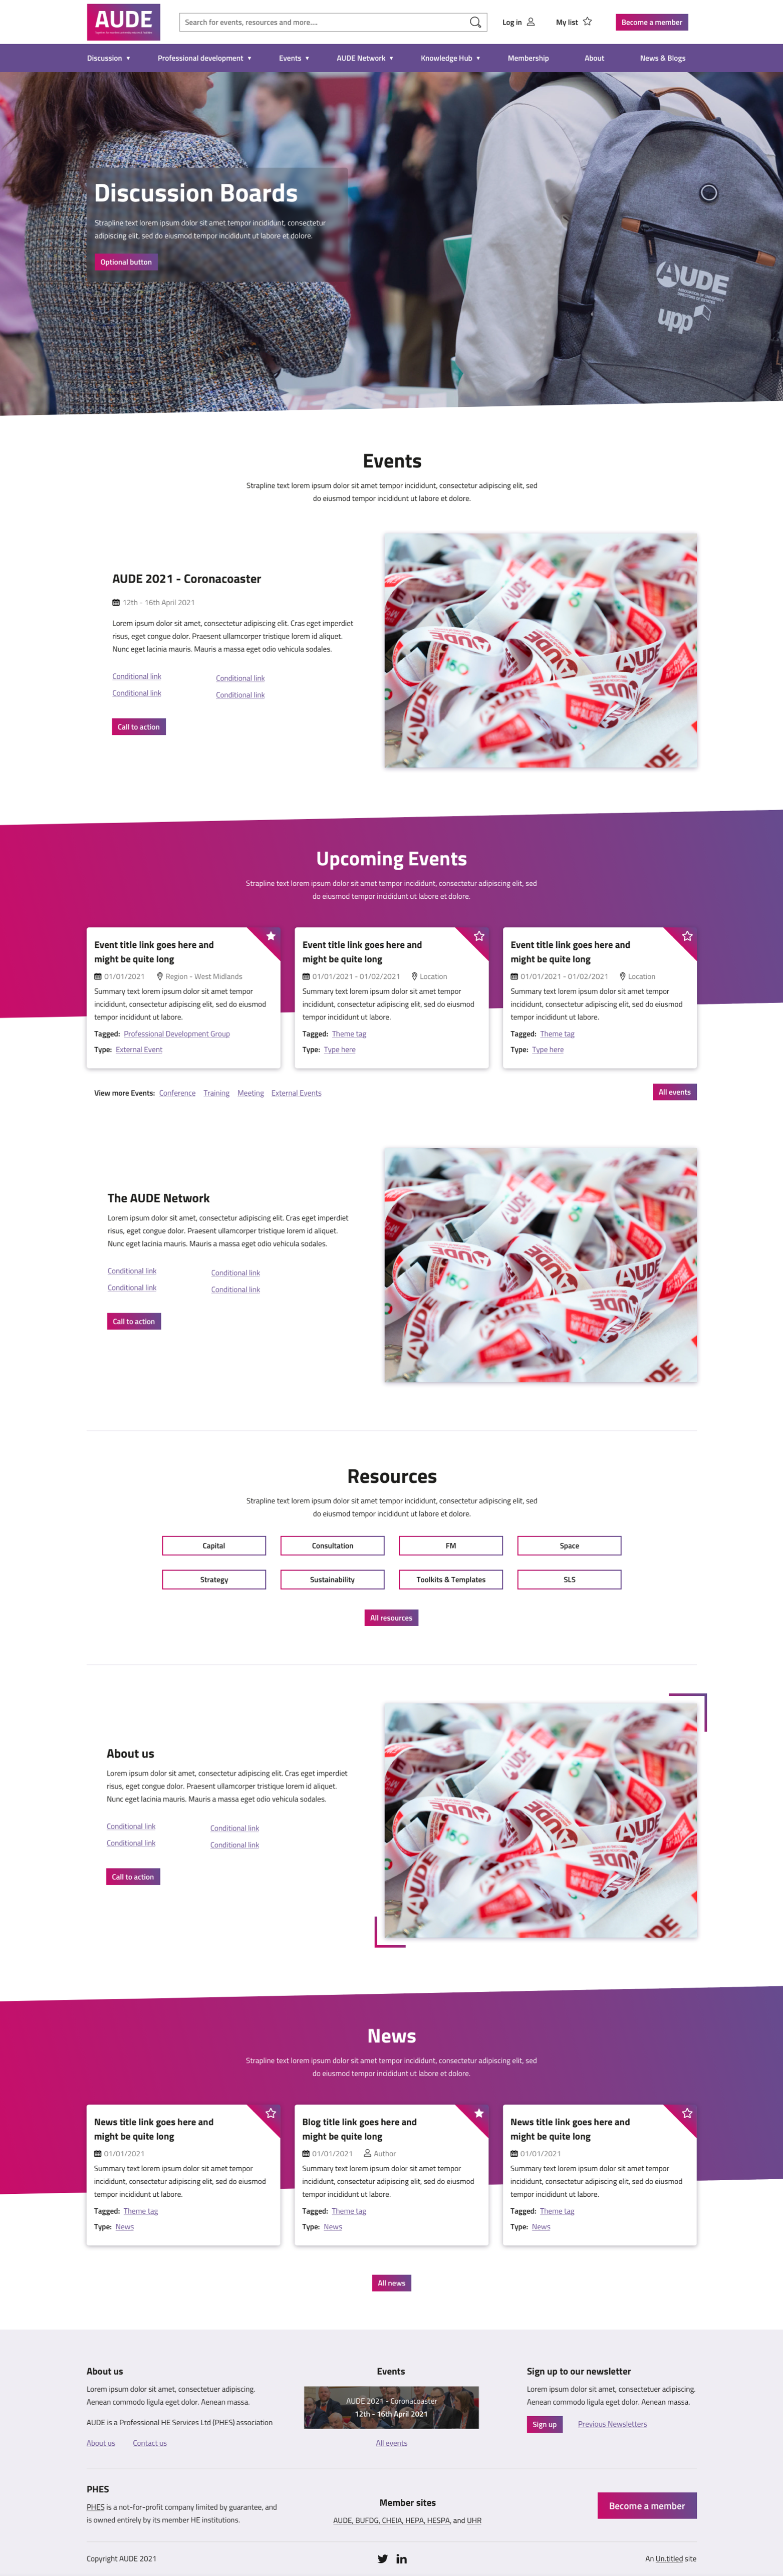 The full site for AUDE, part of PHES